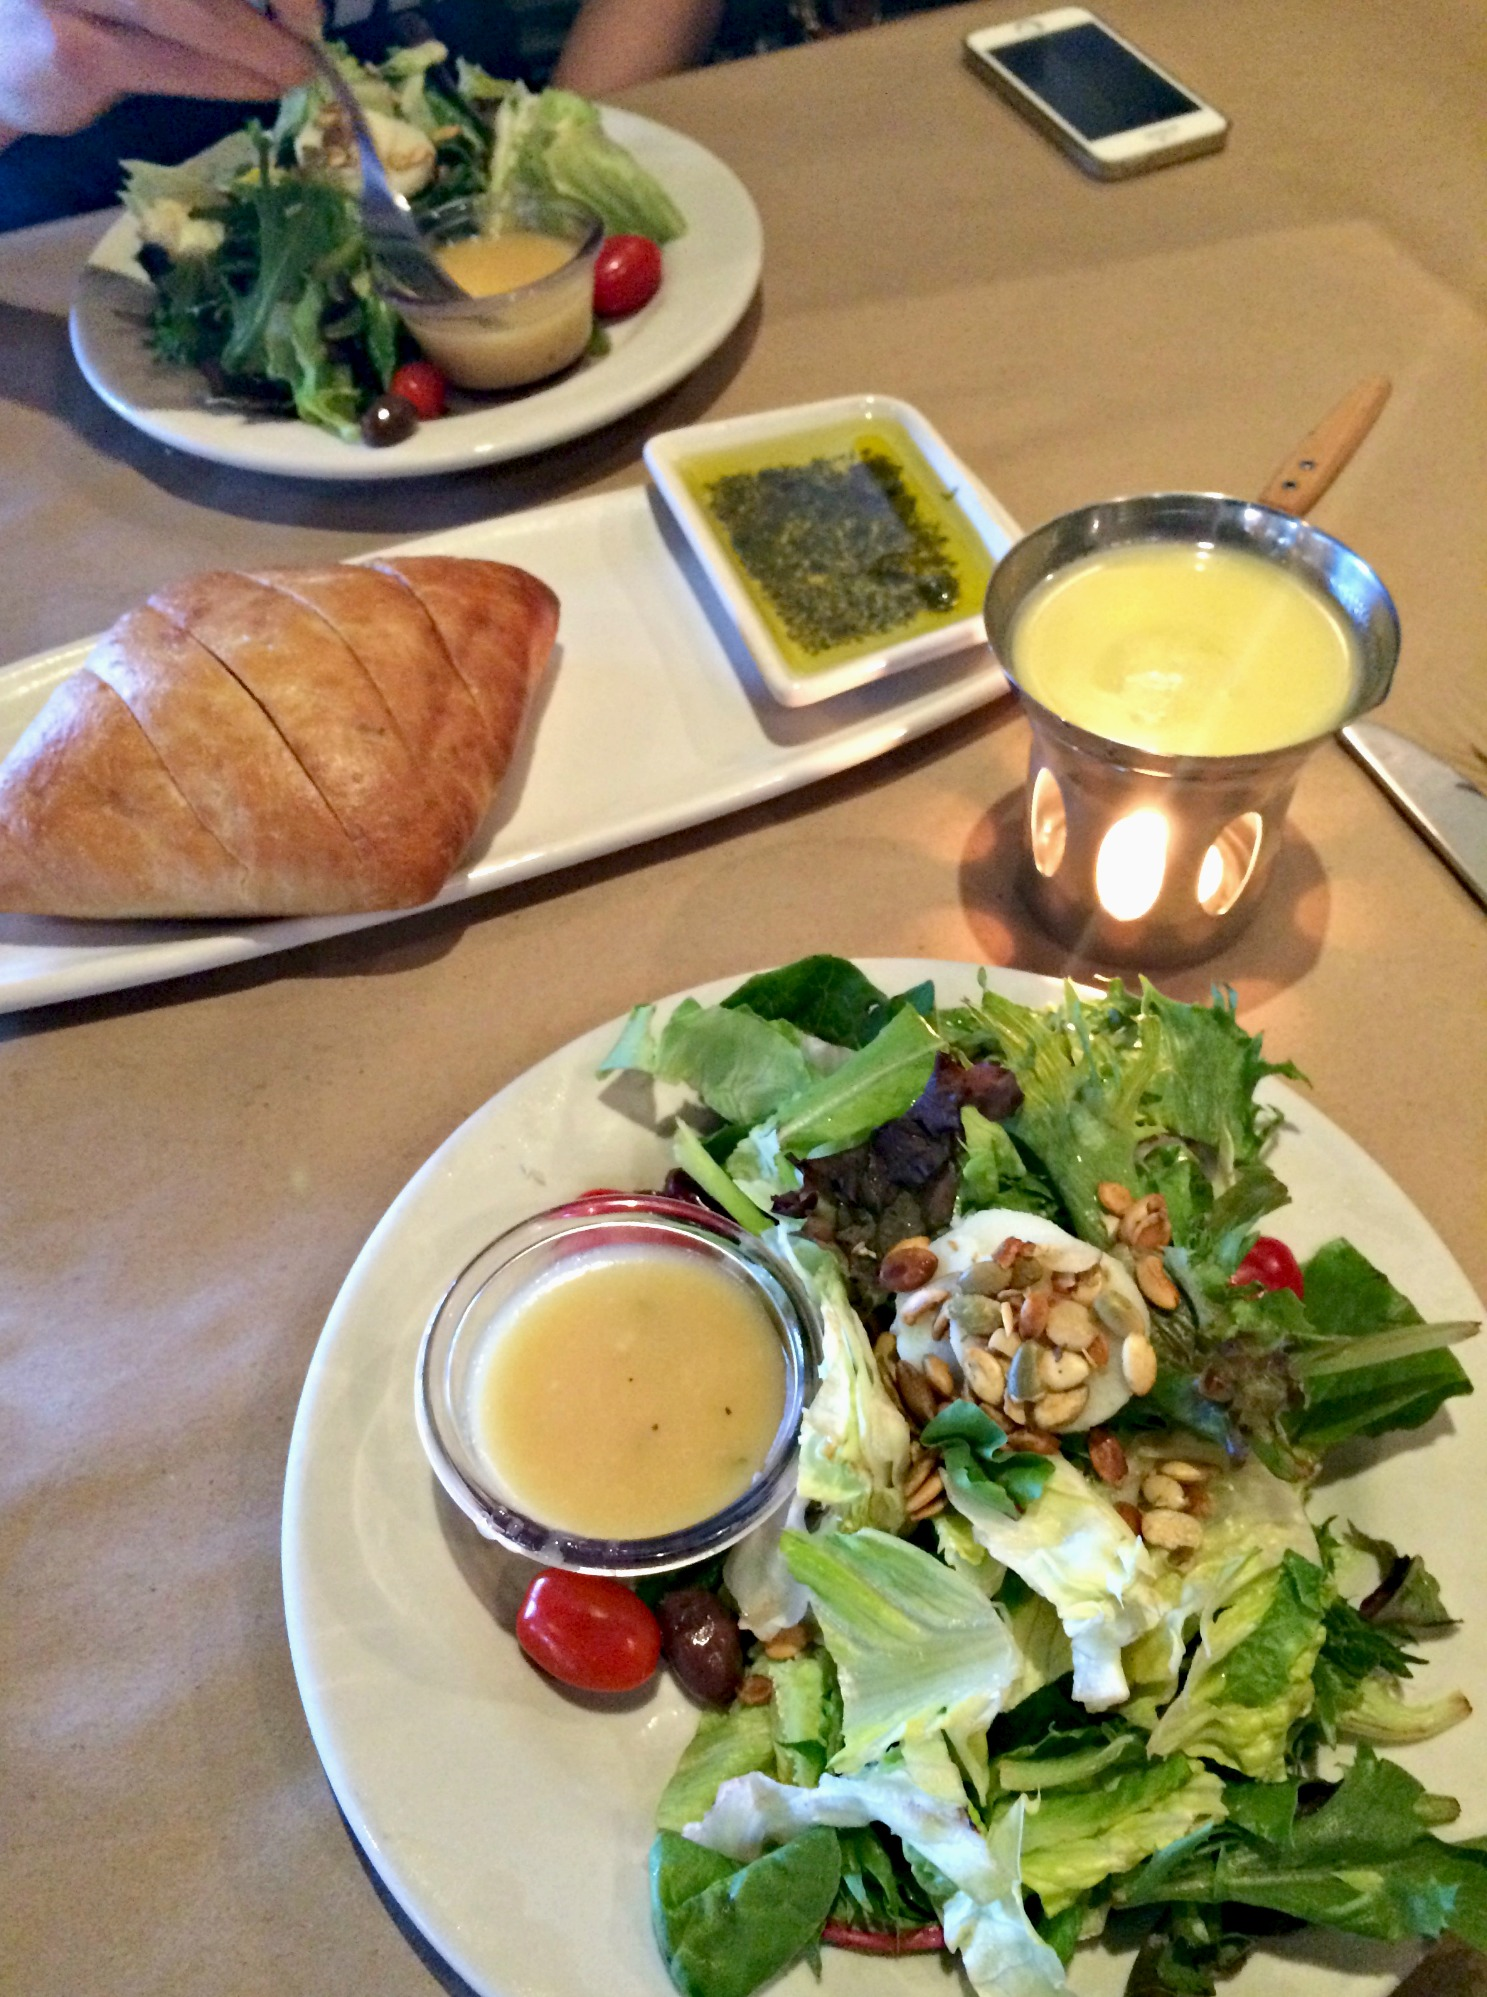 Bonefish house salads and bread appetizer